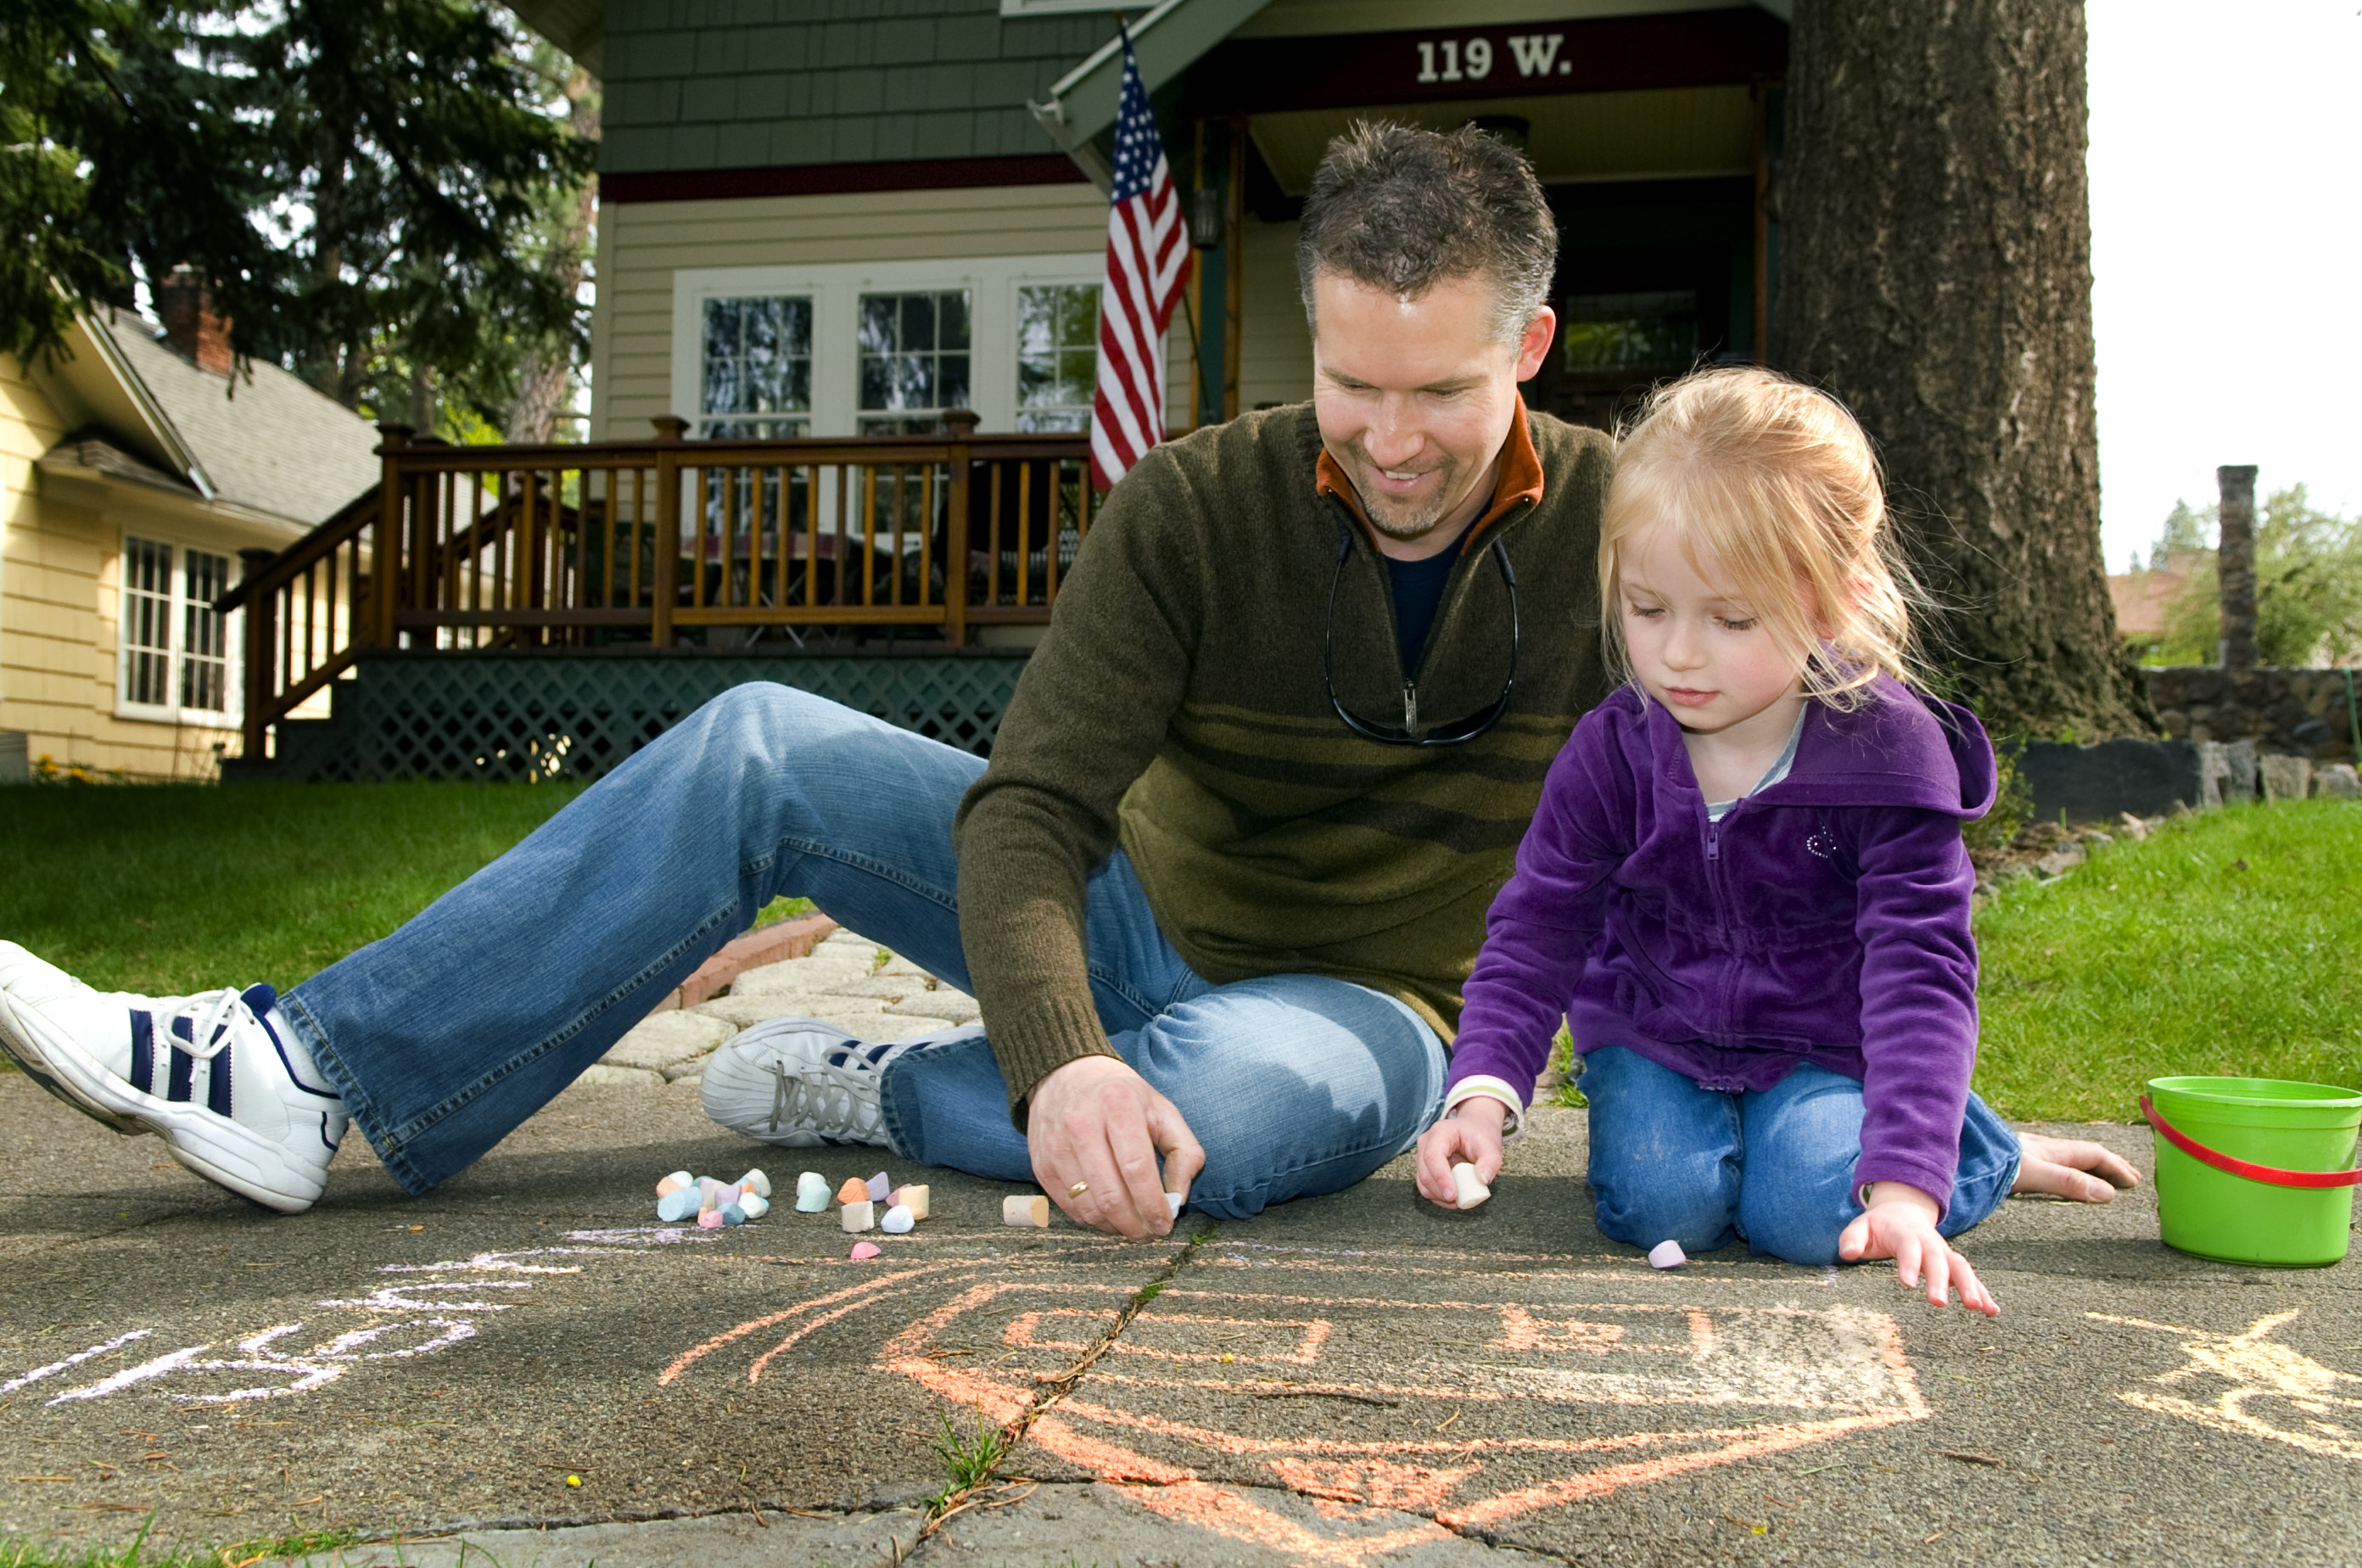 Captivating Stay At Home Dad, Brian Price Creates Some Sidewalk Art With His Daughter